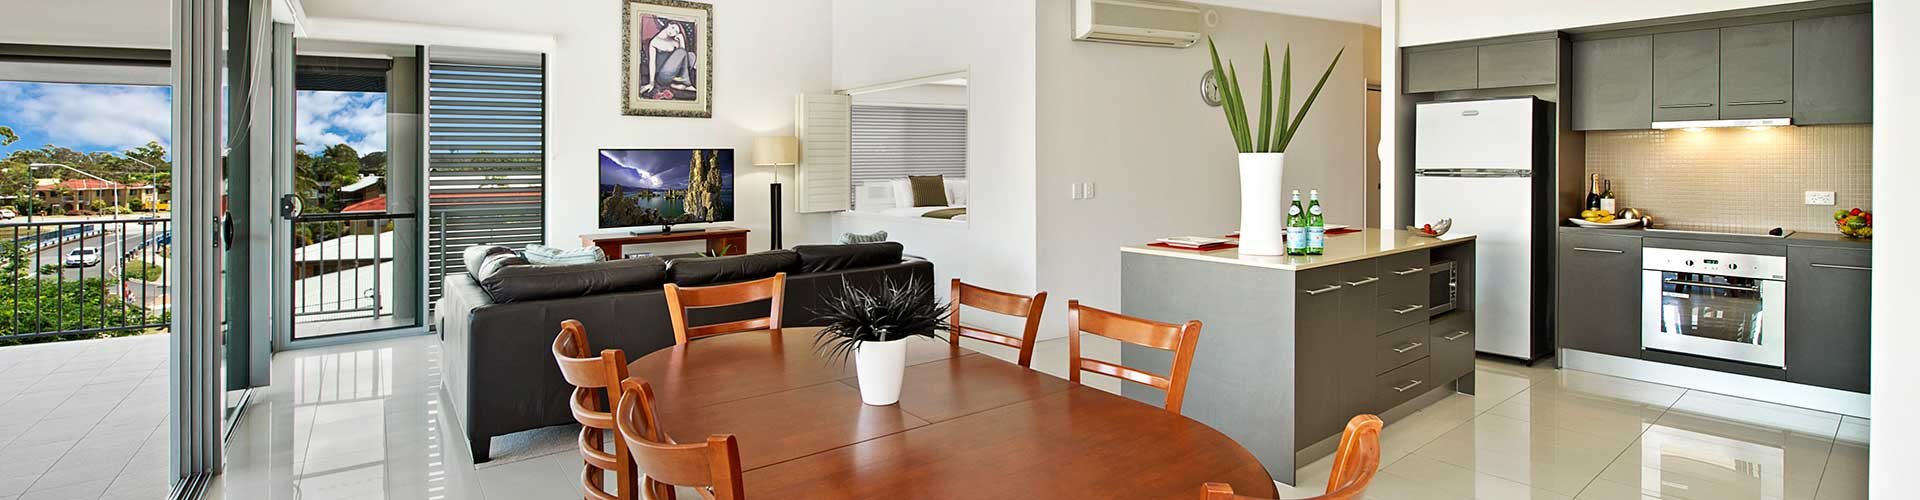 holiday accommodation bribie island unit